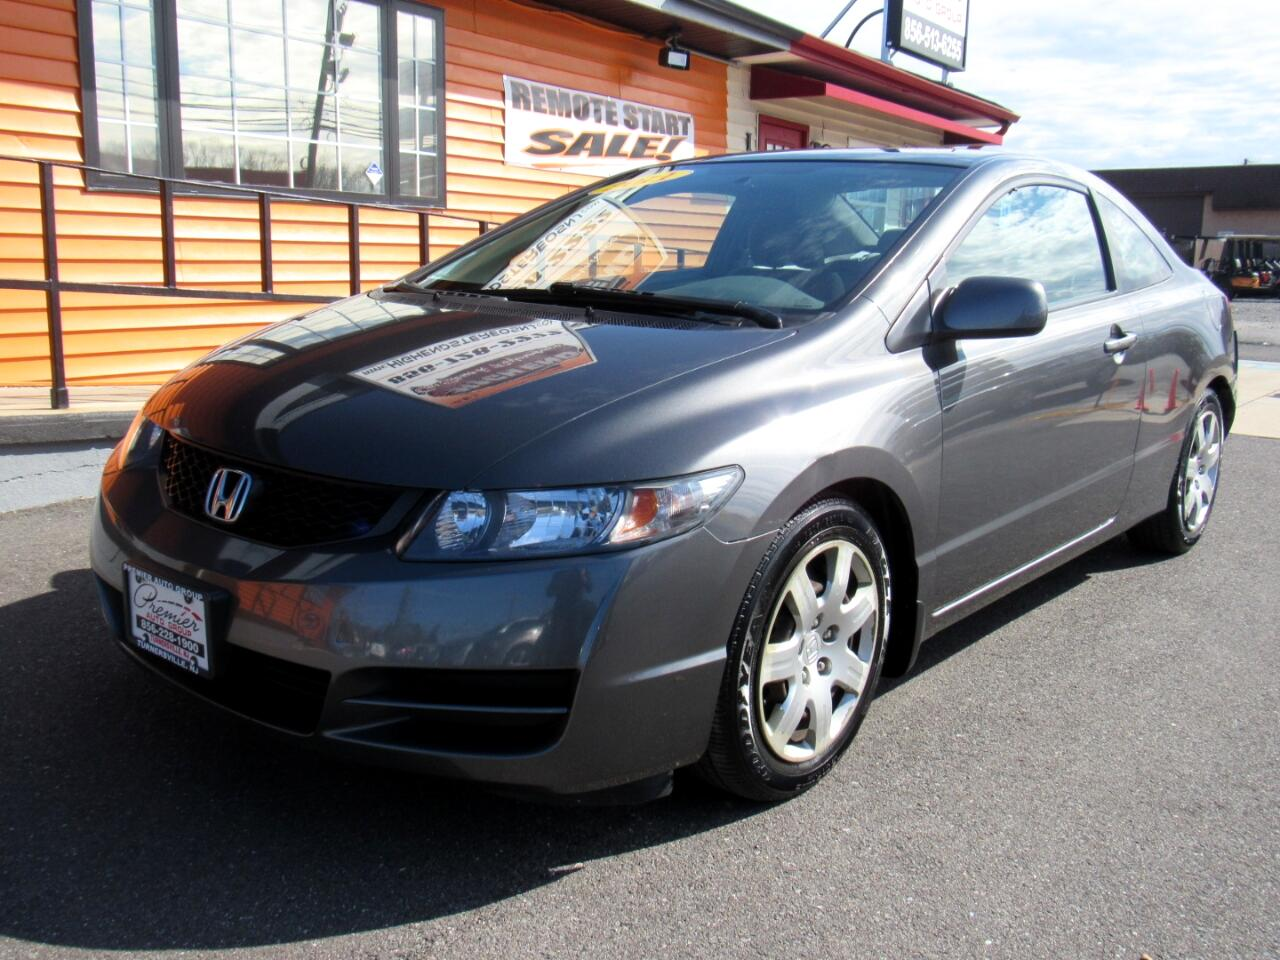 Used 2011 Honda Civic Cpe 2dr Auto LX for Sale in ...